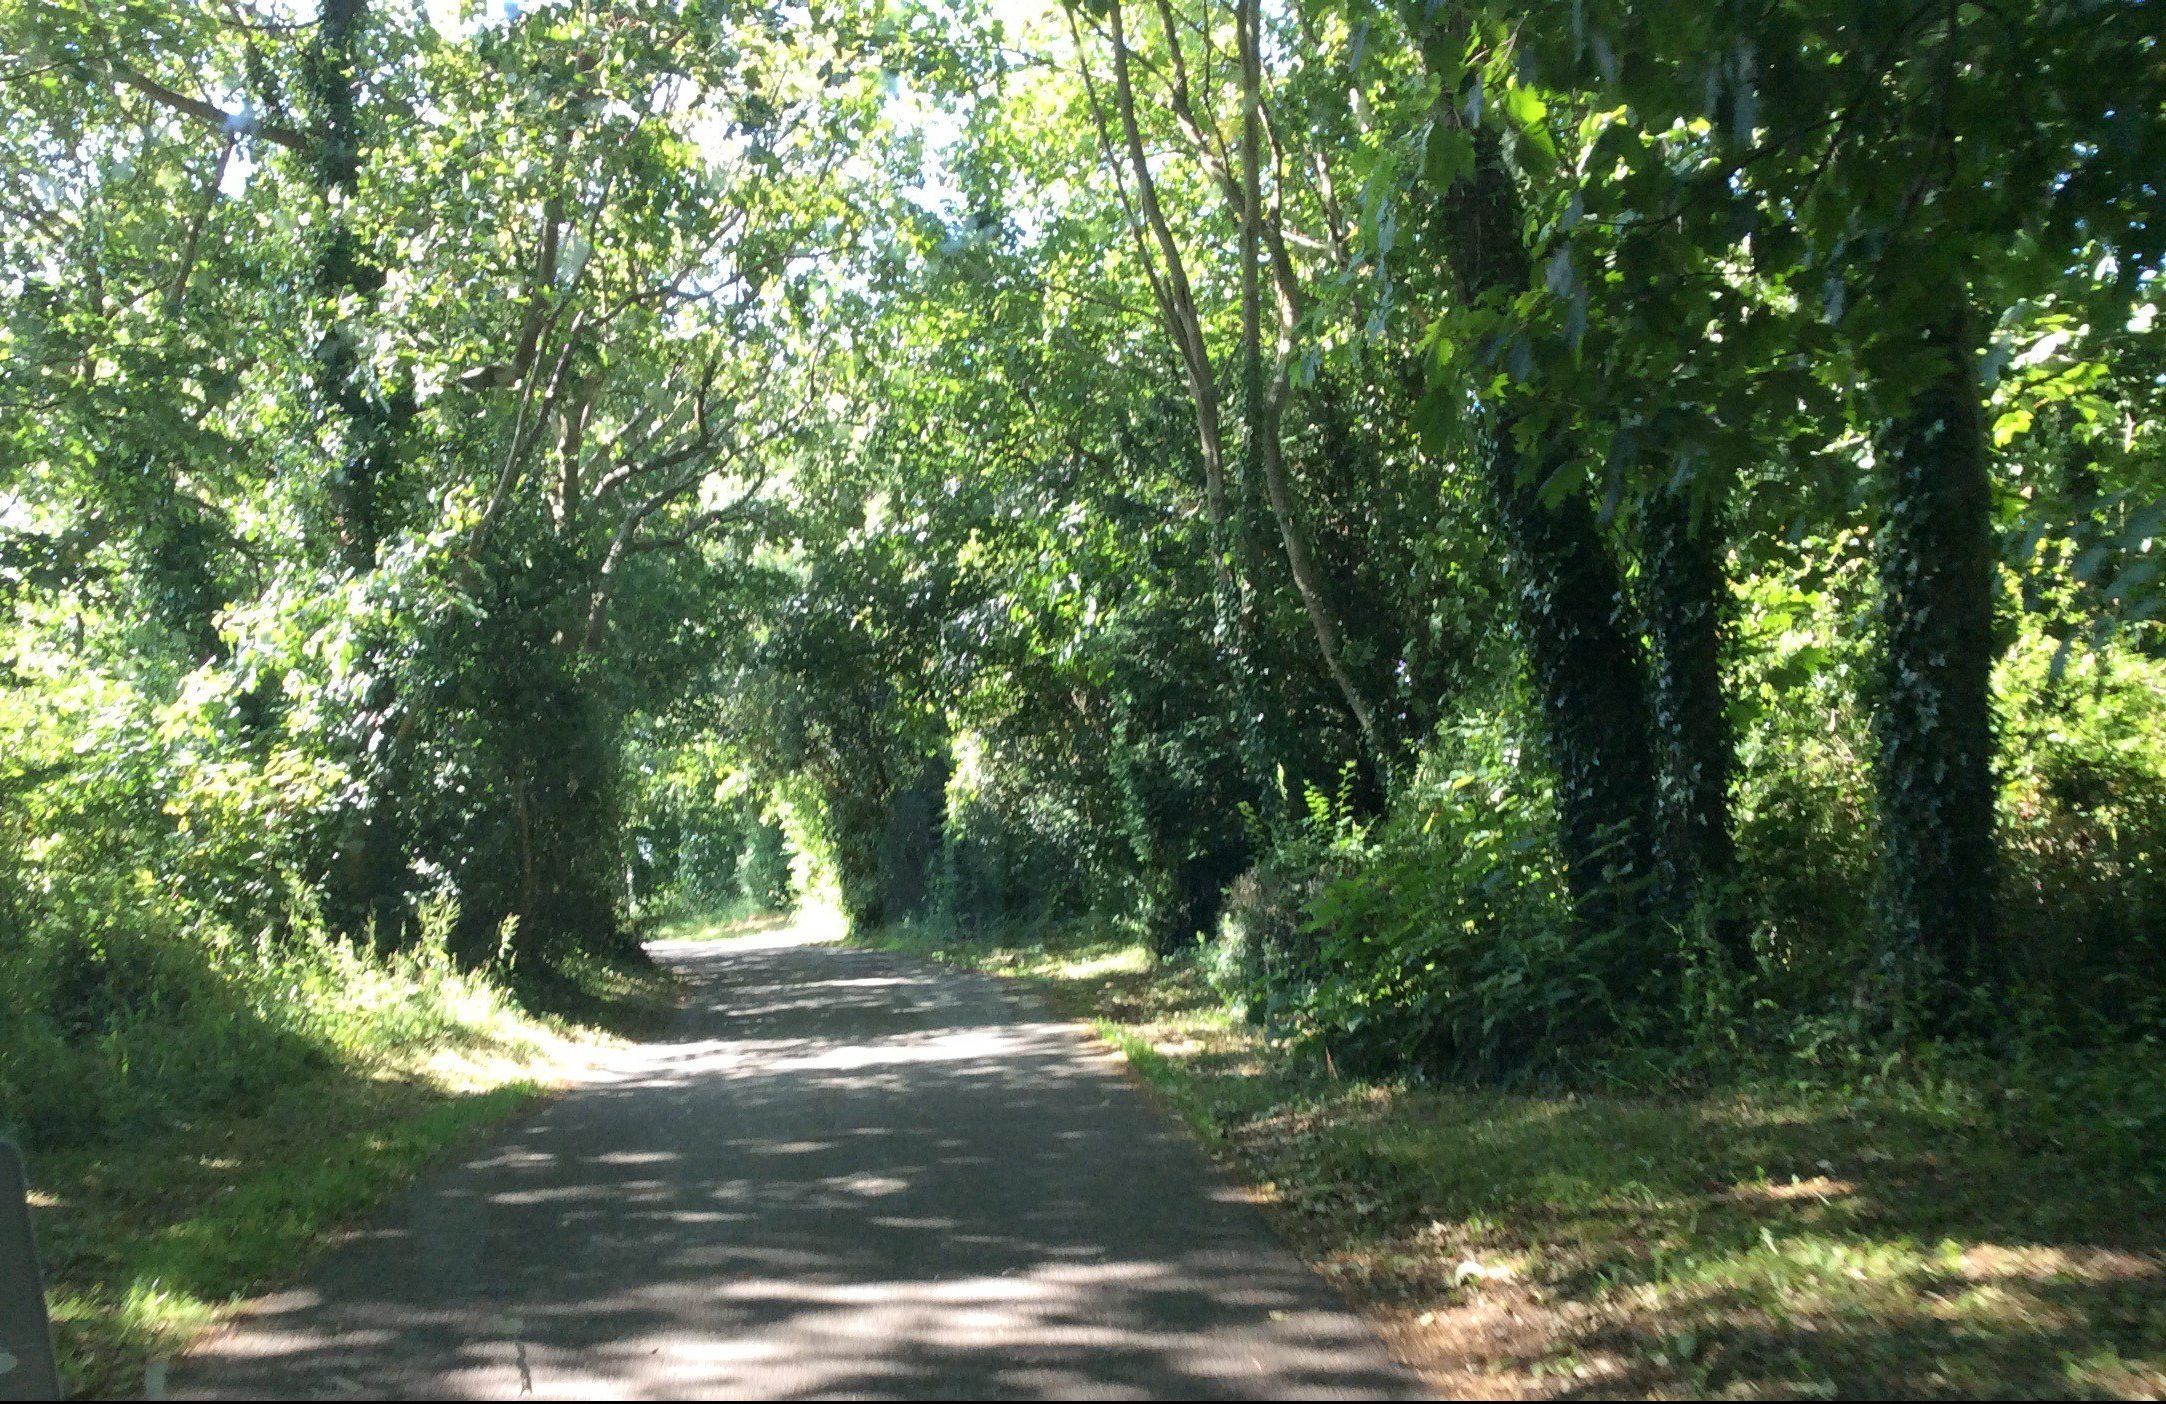 A lane through the woods